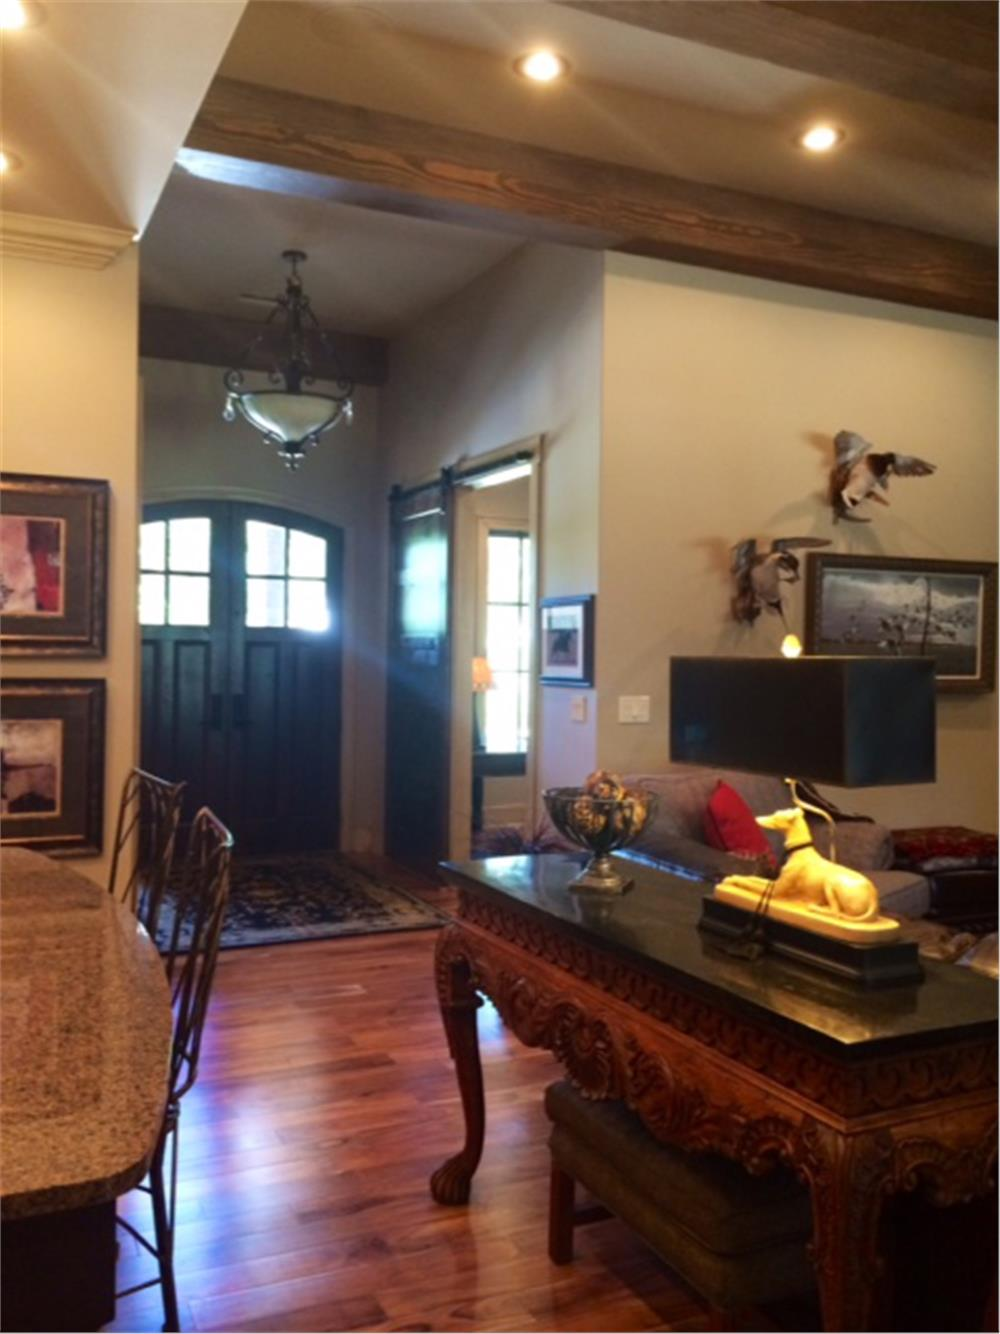 Entry in a home with rustic decor and large ceiling beams